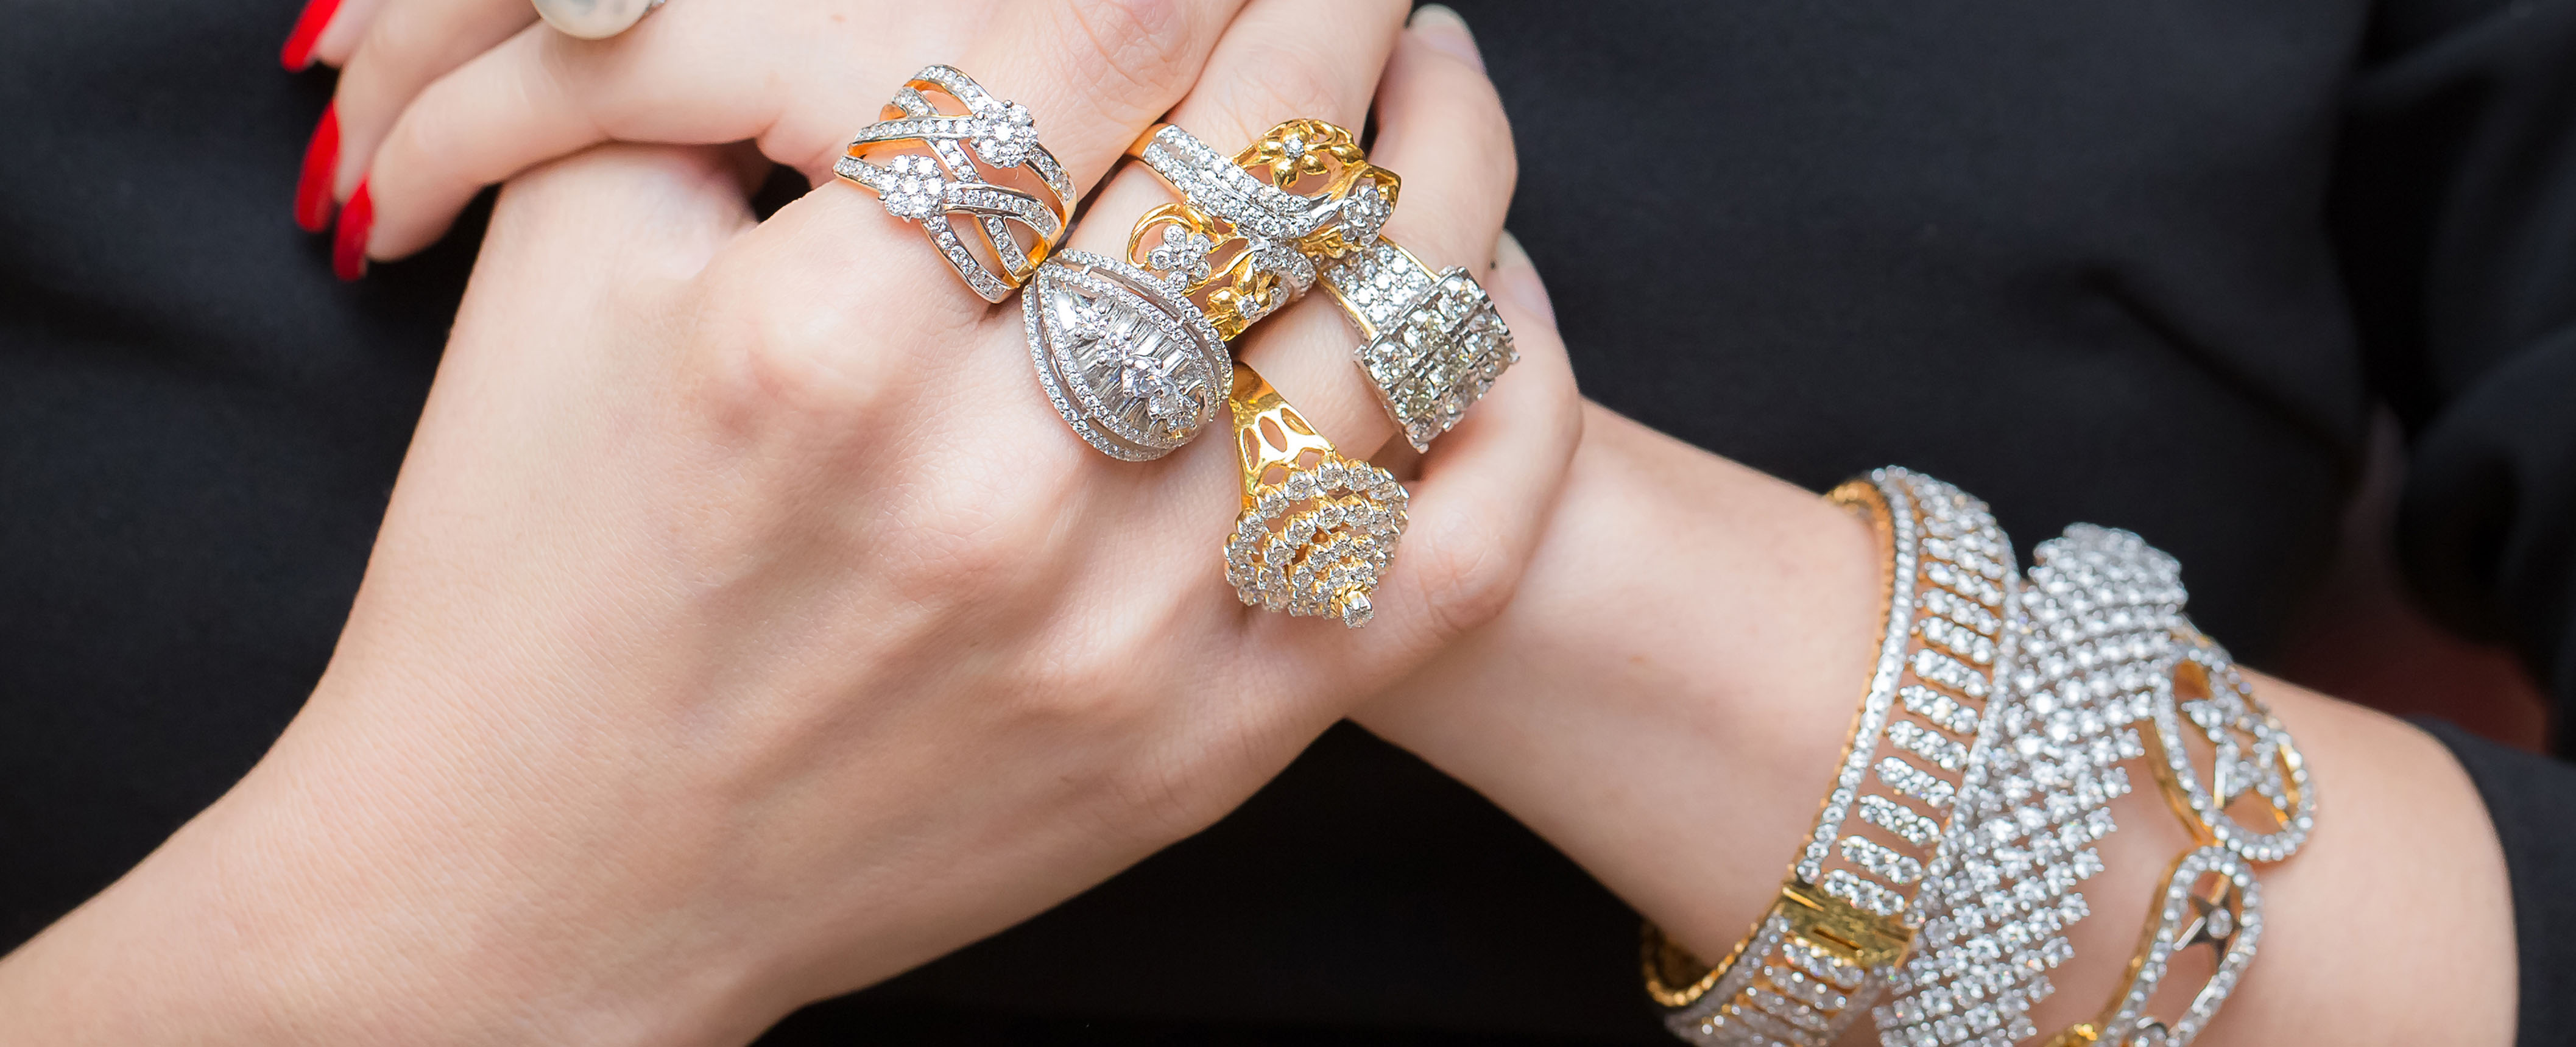 Profitable Jewelry Manufacturing and Exporting Company for Sale in Jaipur